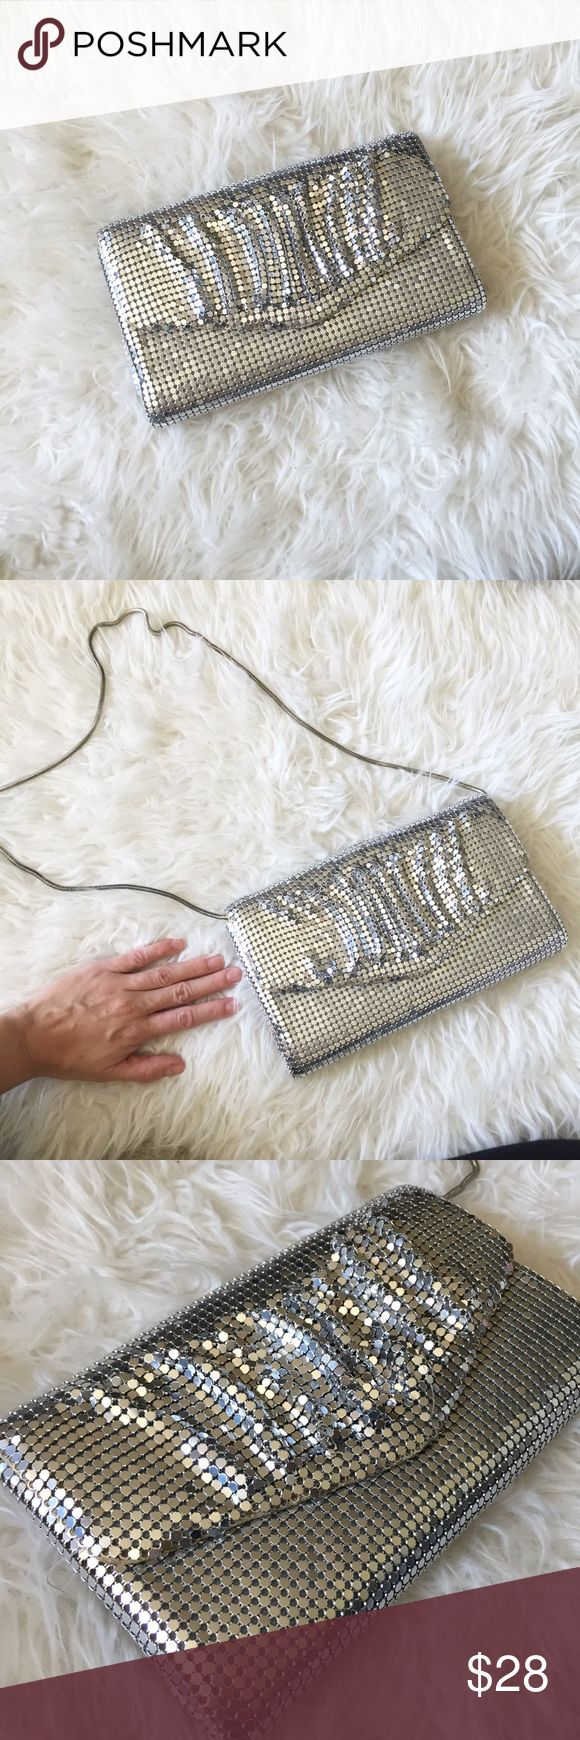 Vintage Chain Purse Silver Metallic Bag Clutch Vintage bag. So great for the holidays 🎁🎄 Strap can be tucked inside and used as a clutch. Vintage Bags Clutches & Wristlets